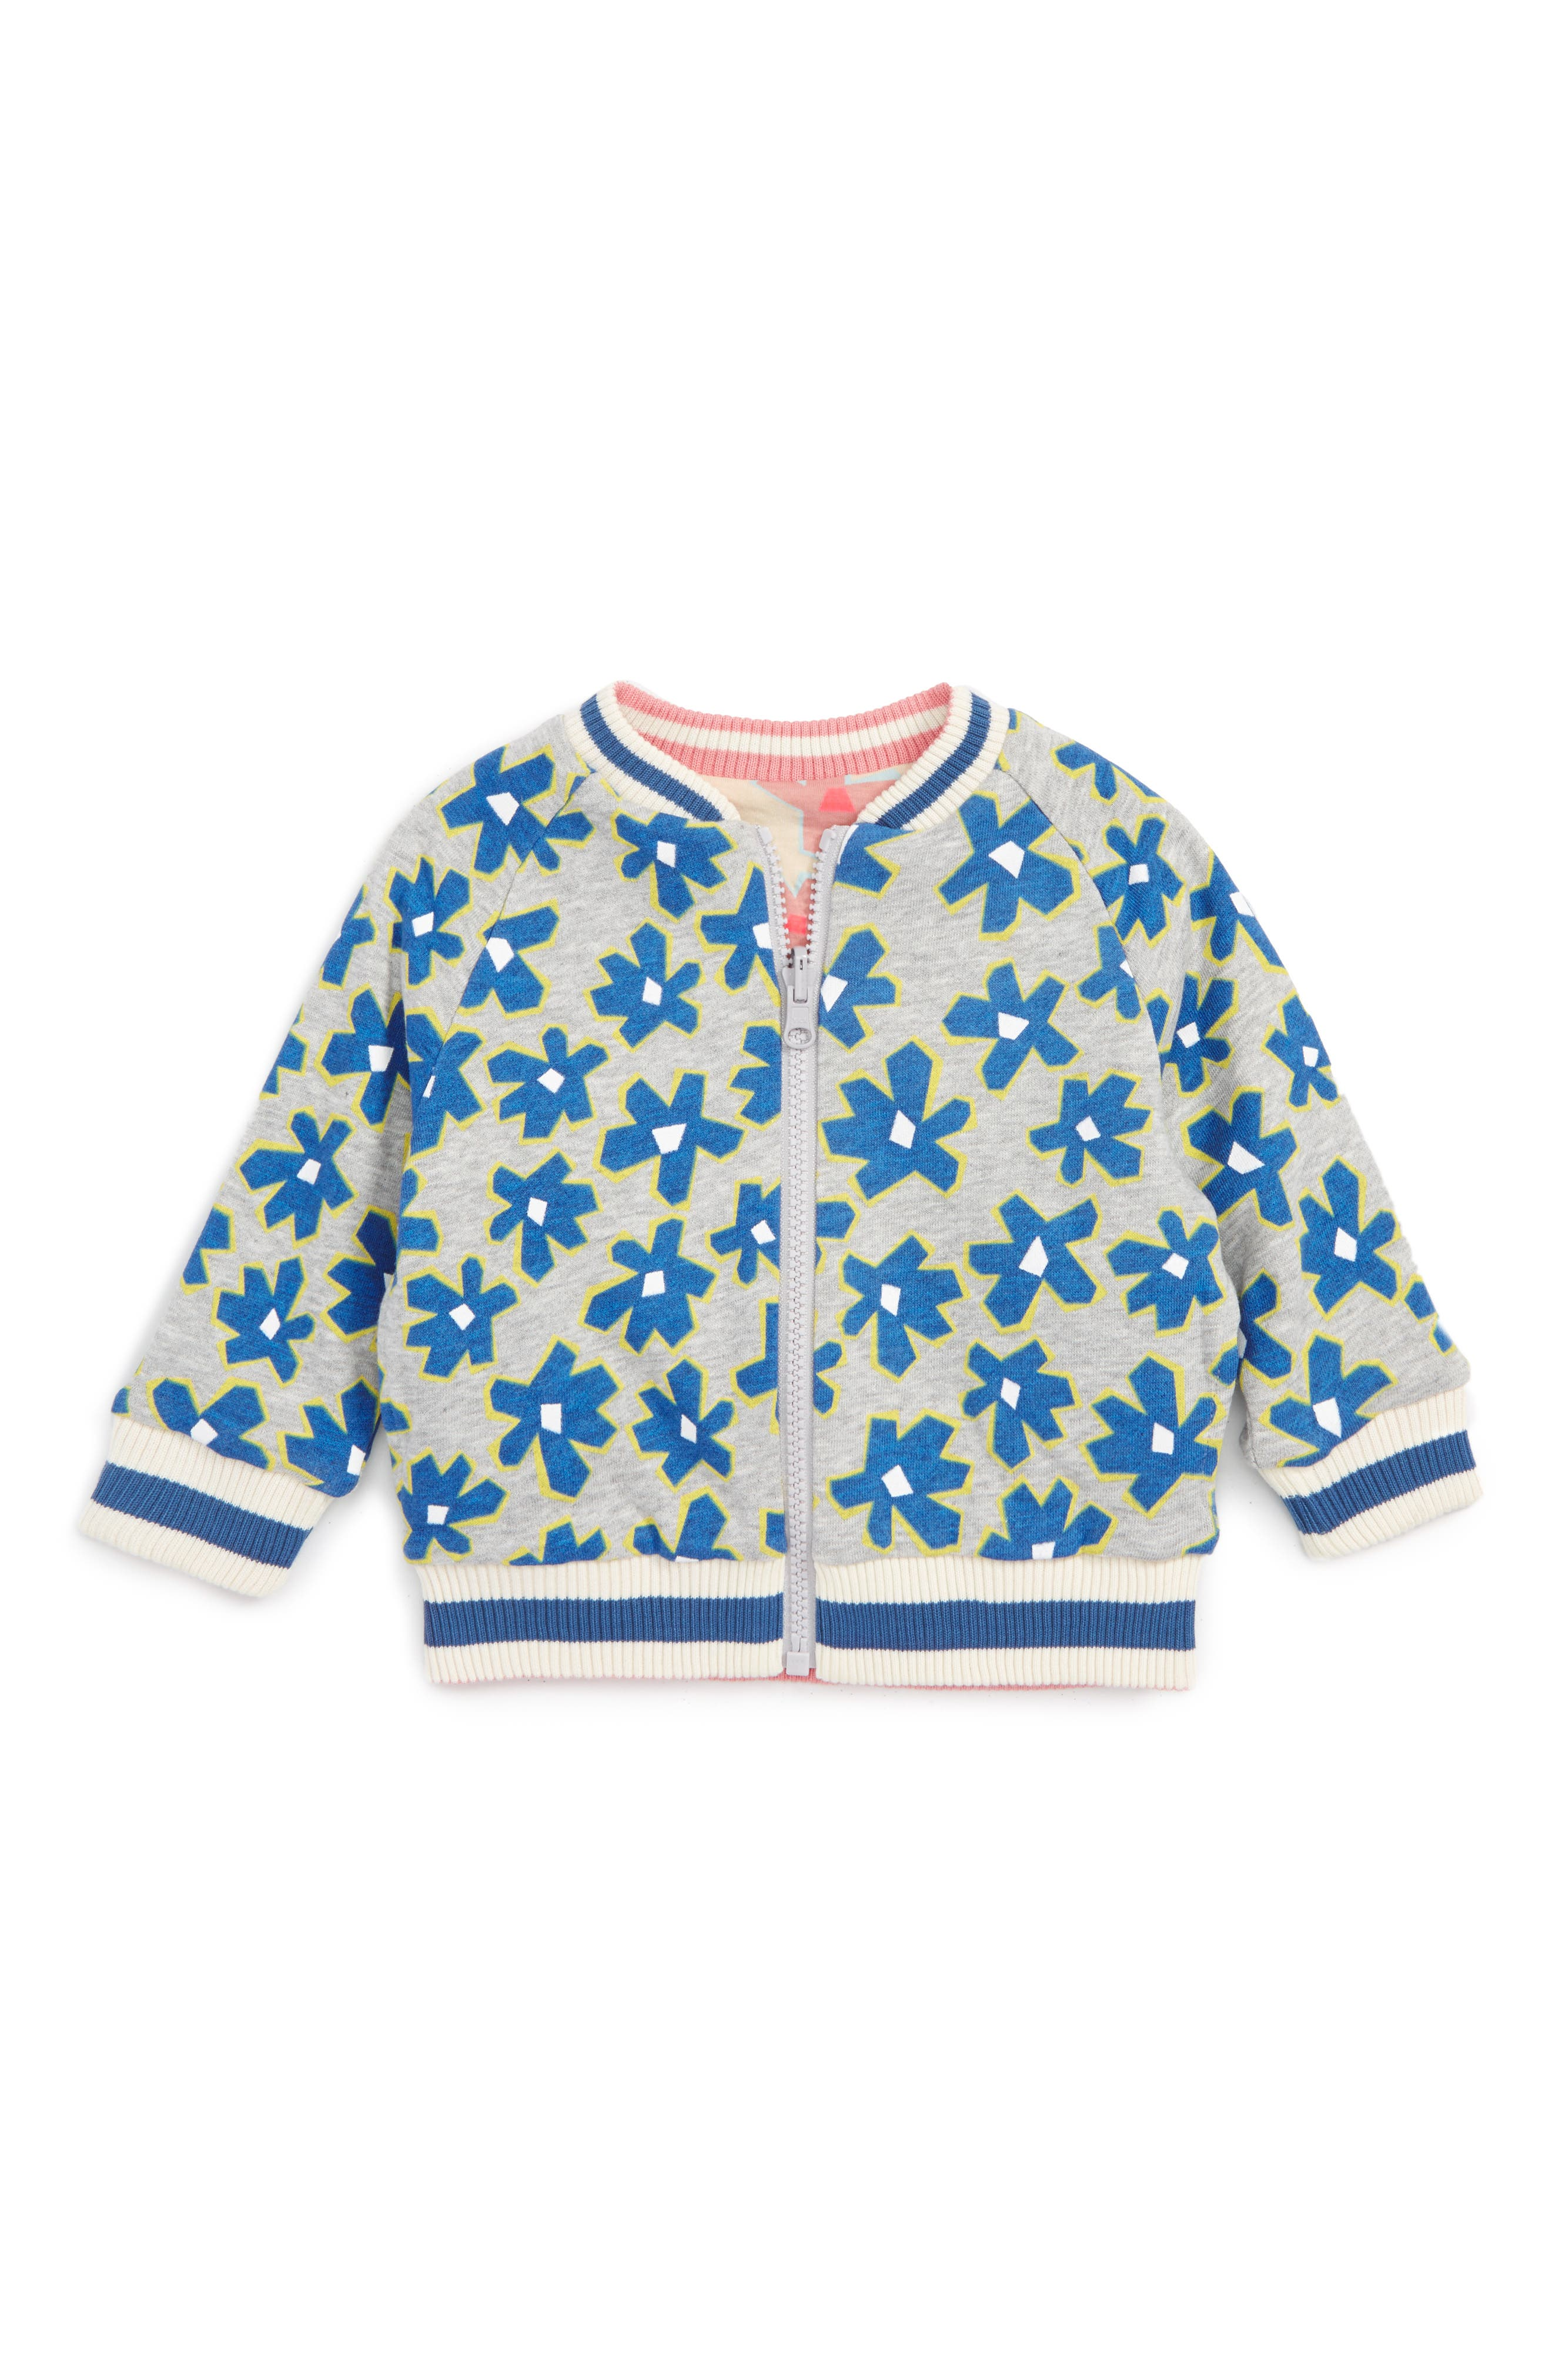 Stella McCartney Kids Daisy Print Reversible Bomber Jacket (Baby Girls)